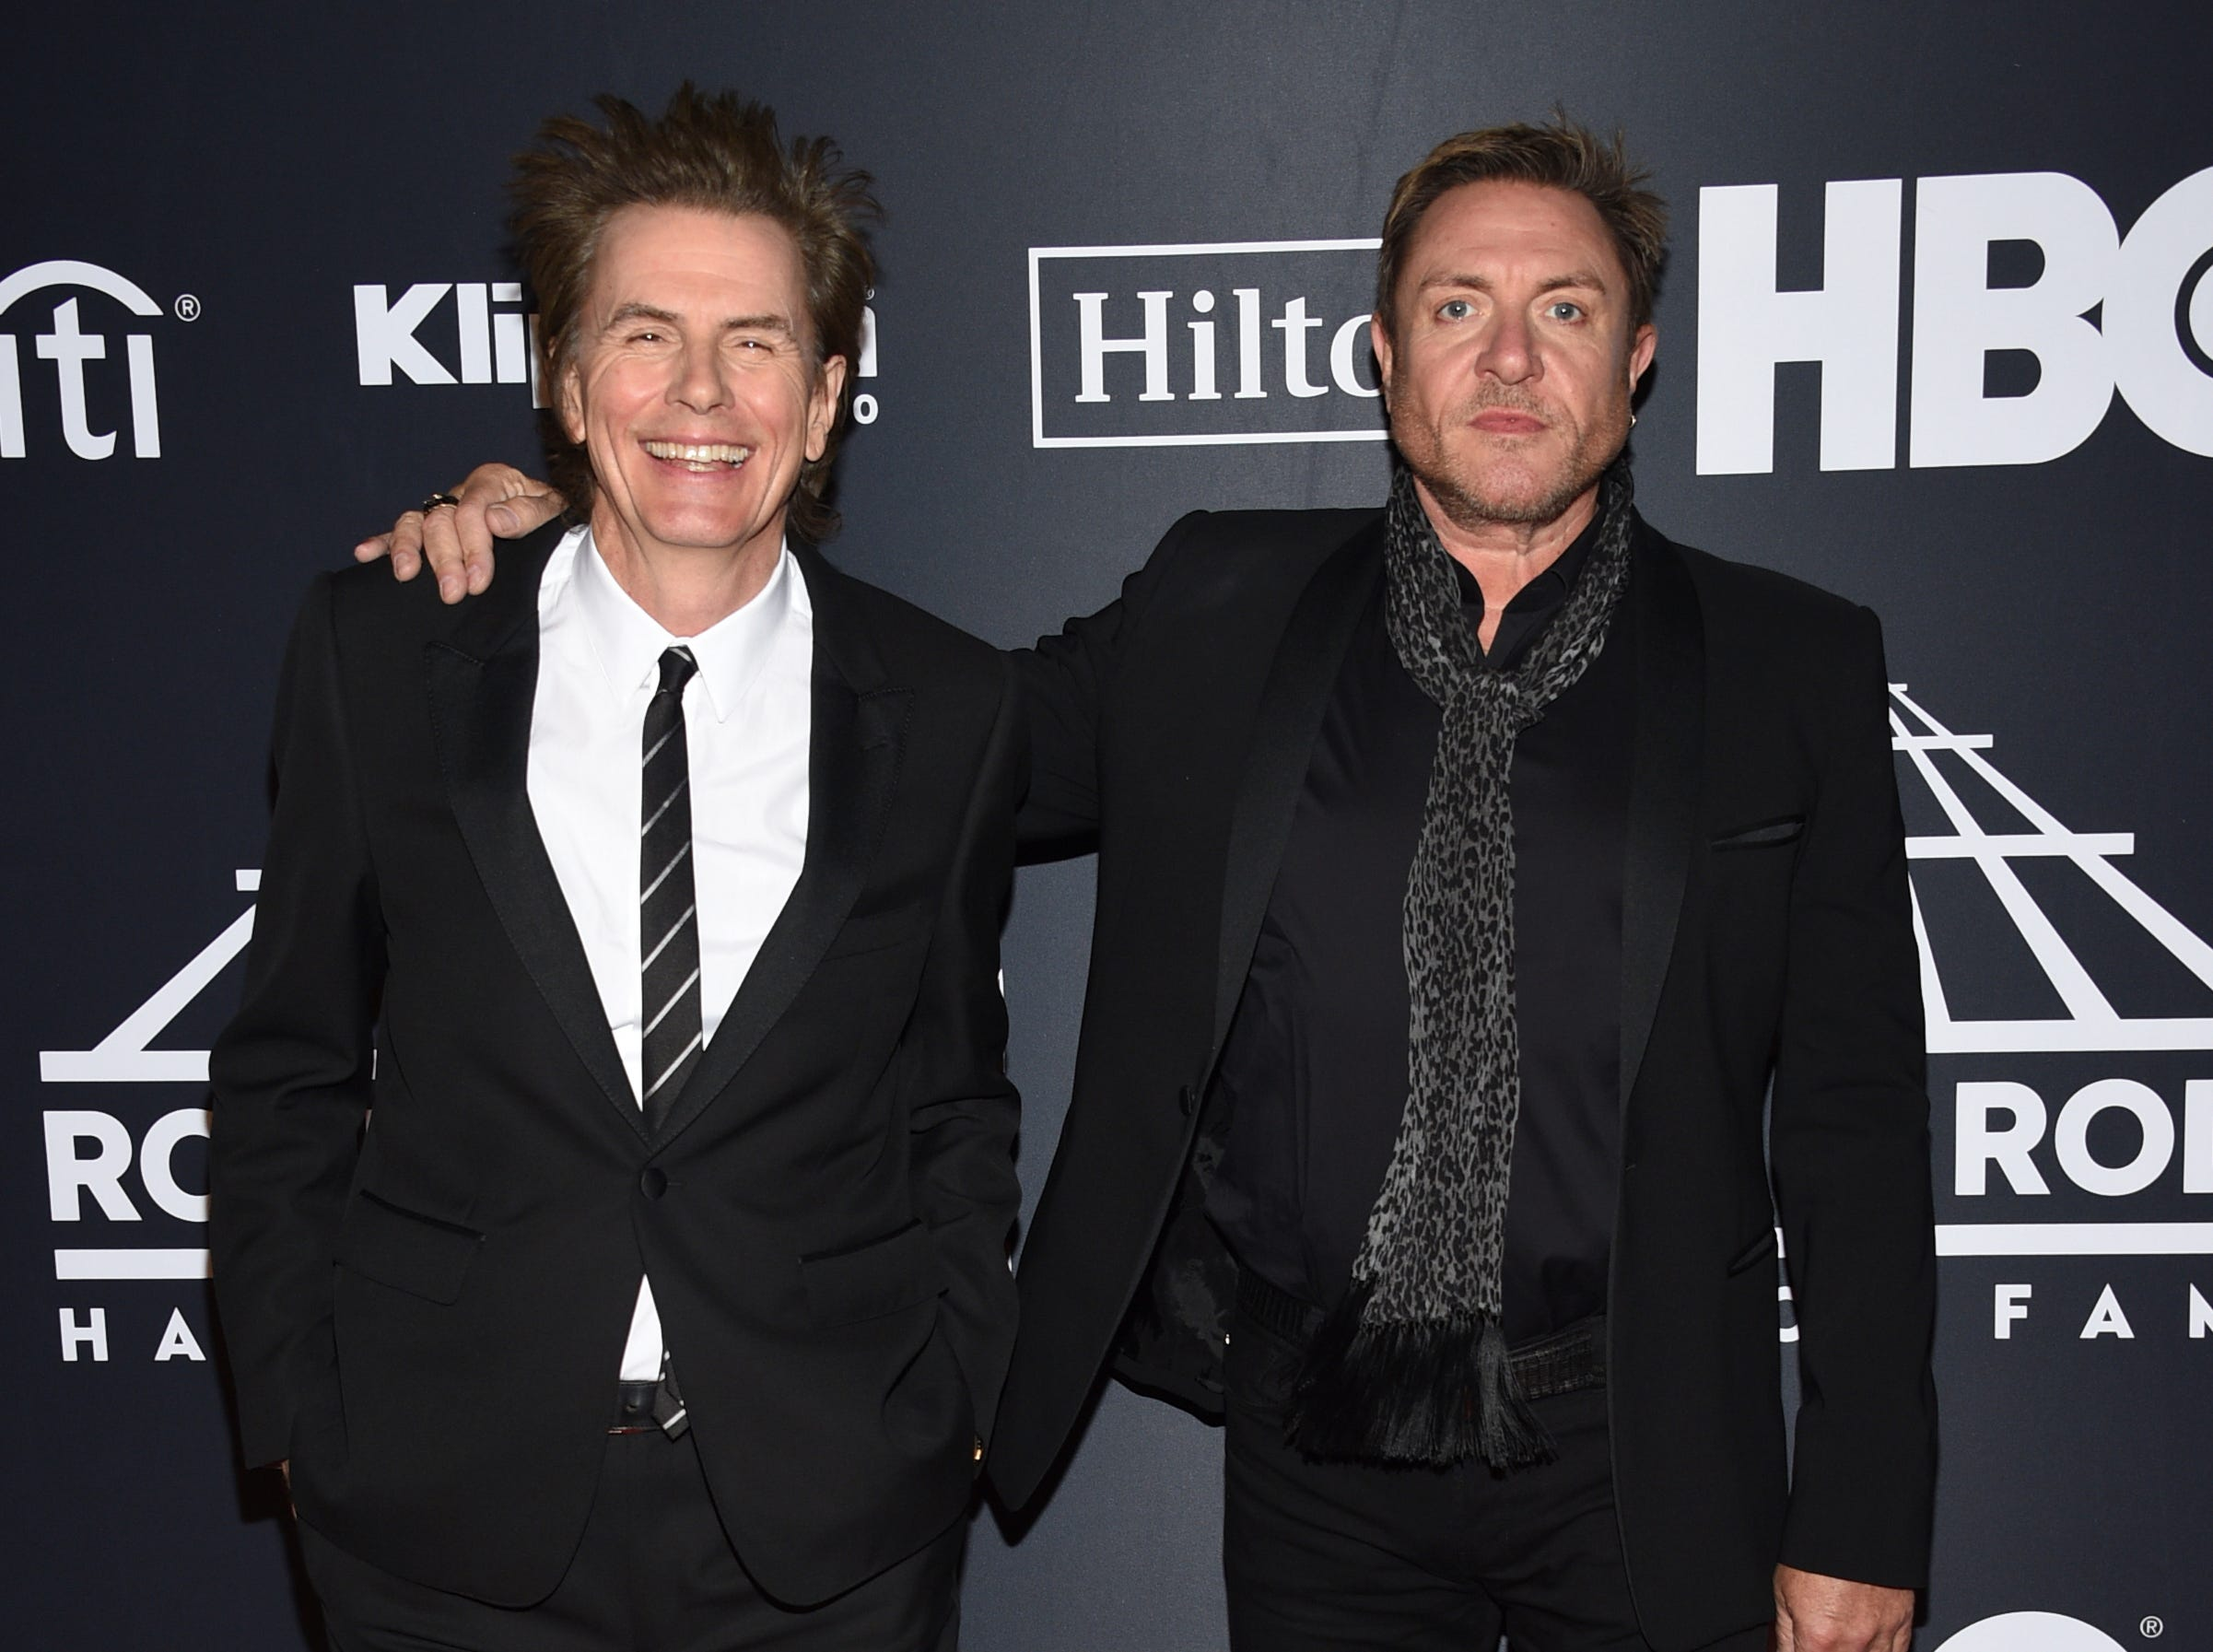 John Taylor, left, and Simon Le Bon, of Duran Duran, arrive at the Rock & Roll Hall of Fame induction ceremony at the Barclays Center on Friday, March 29, 2019, in New York. (Photo by Evan Agostini/Invision/AP) ORG XMIT: NYPM127